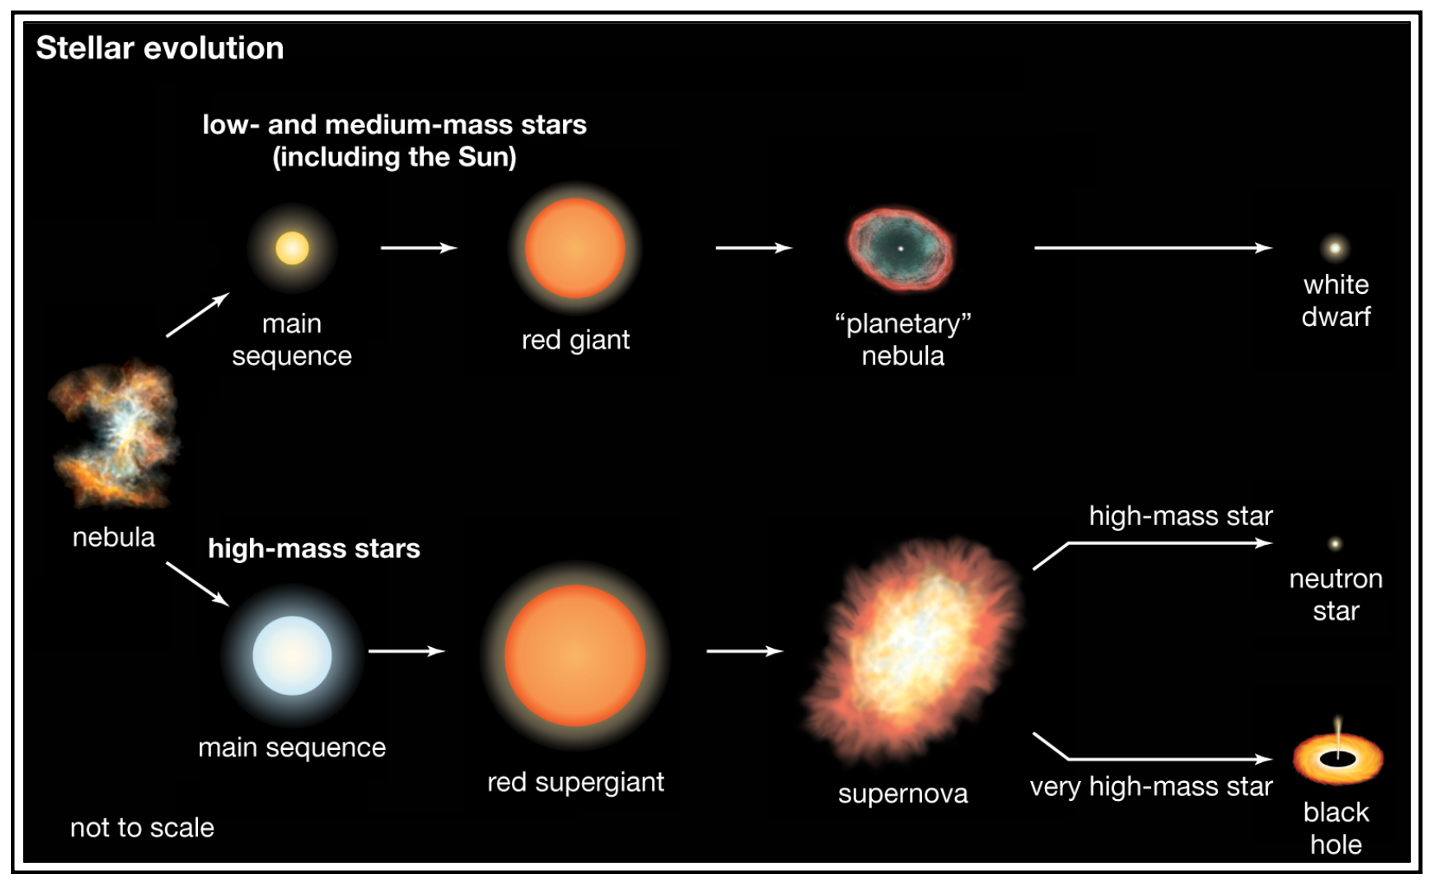 A succinct overview of the different paths of stellar evolution.